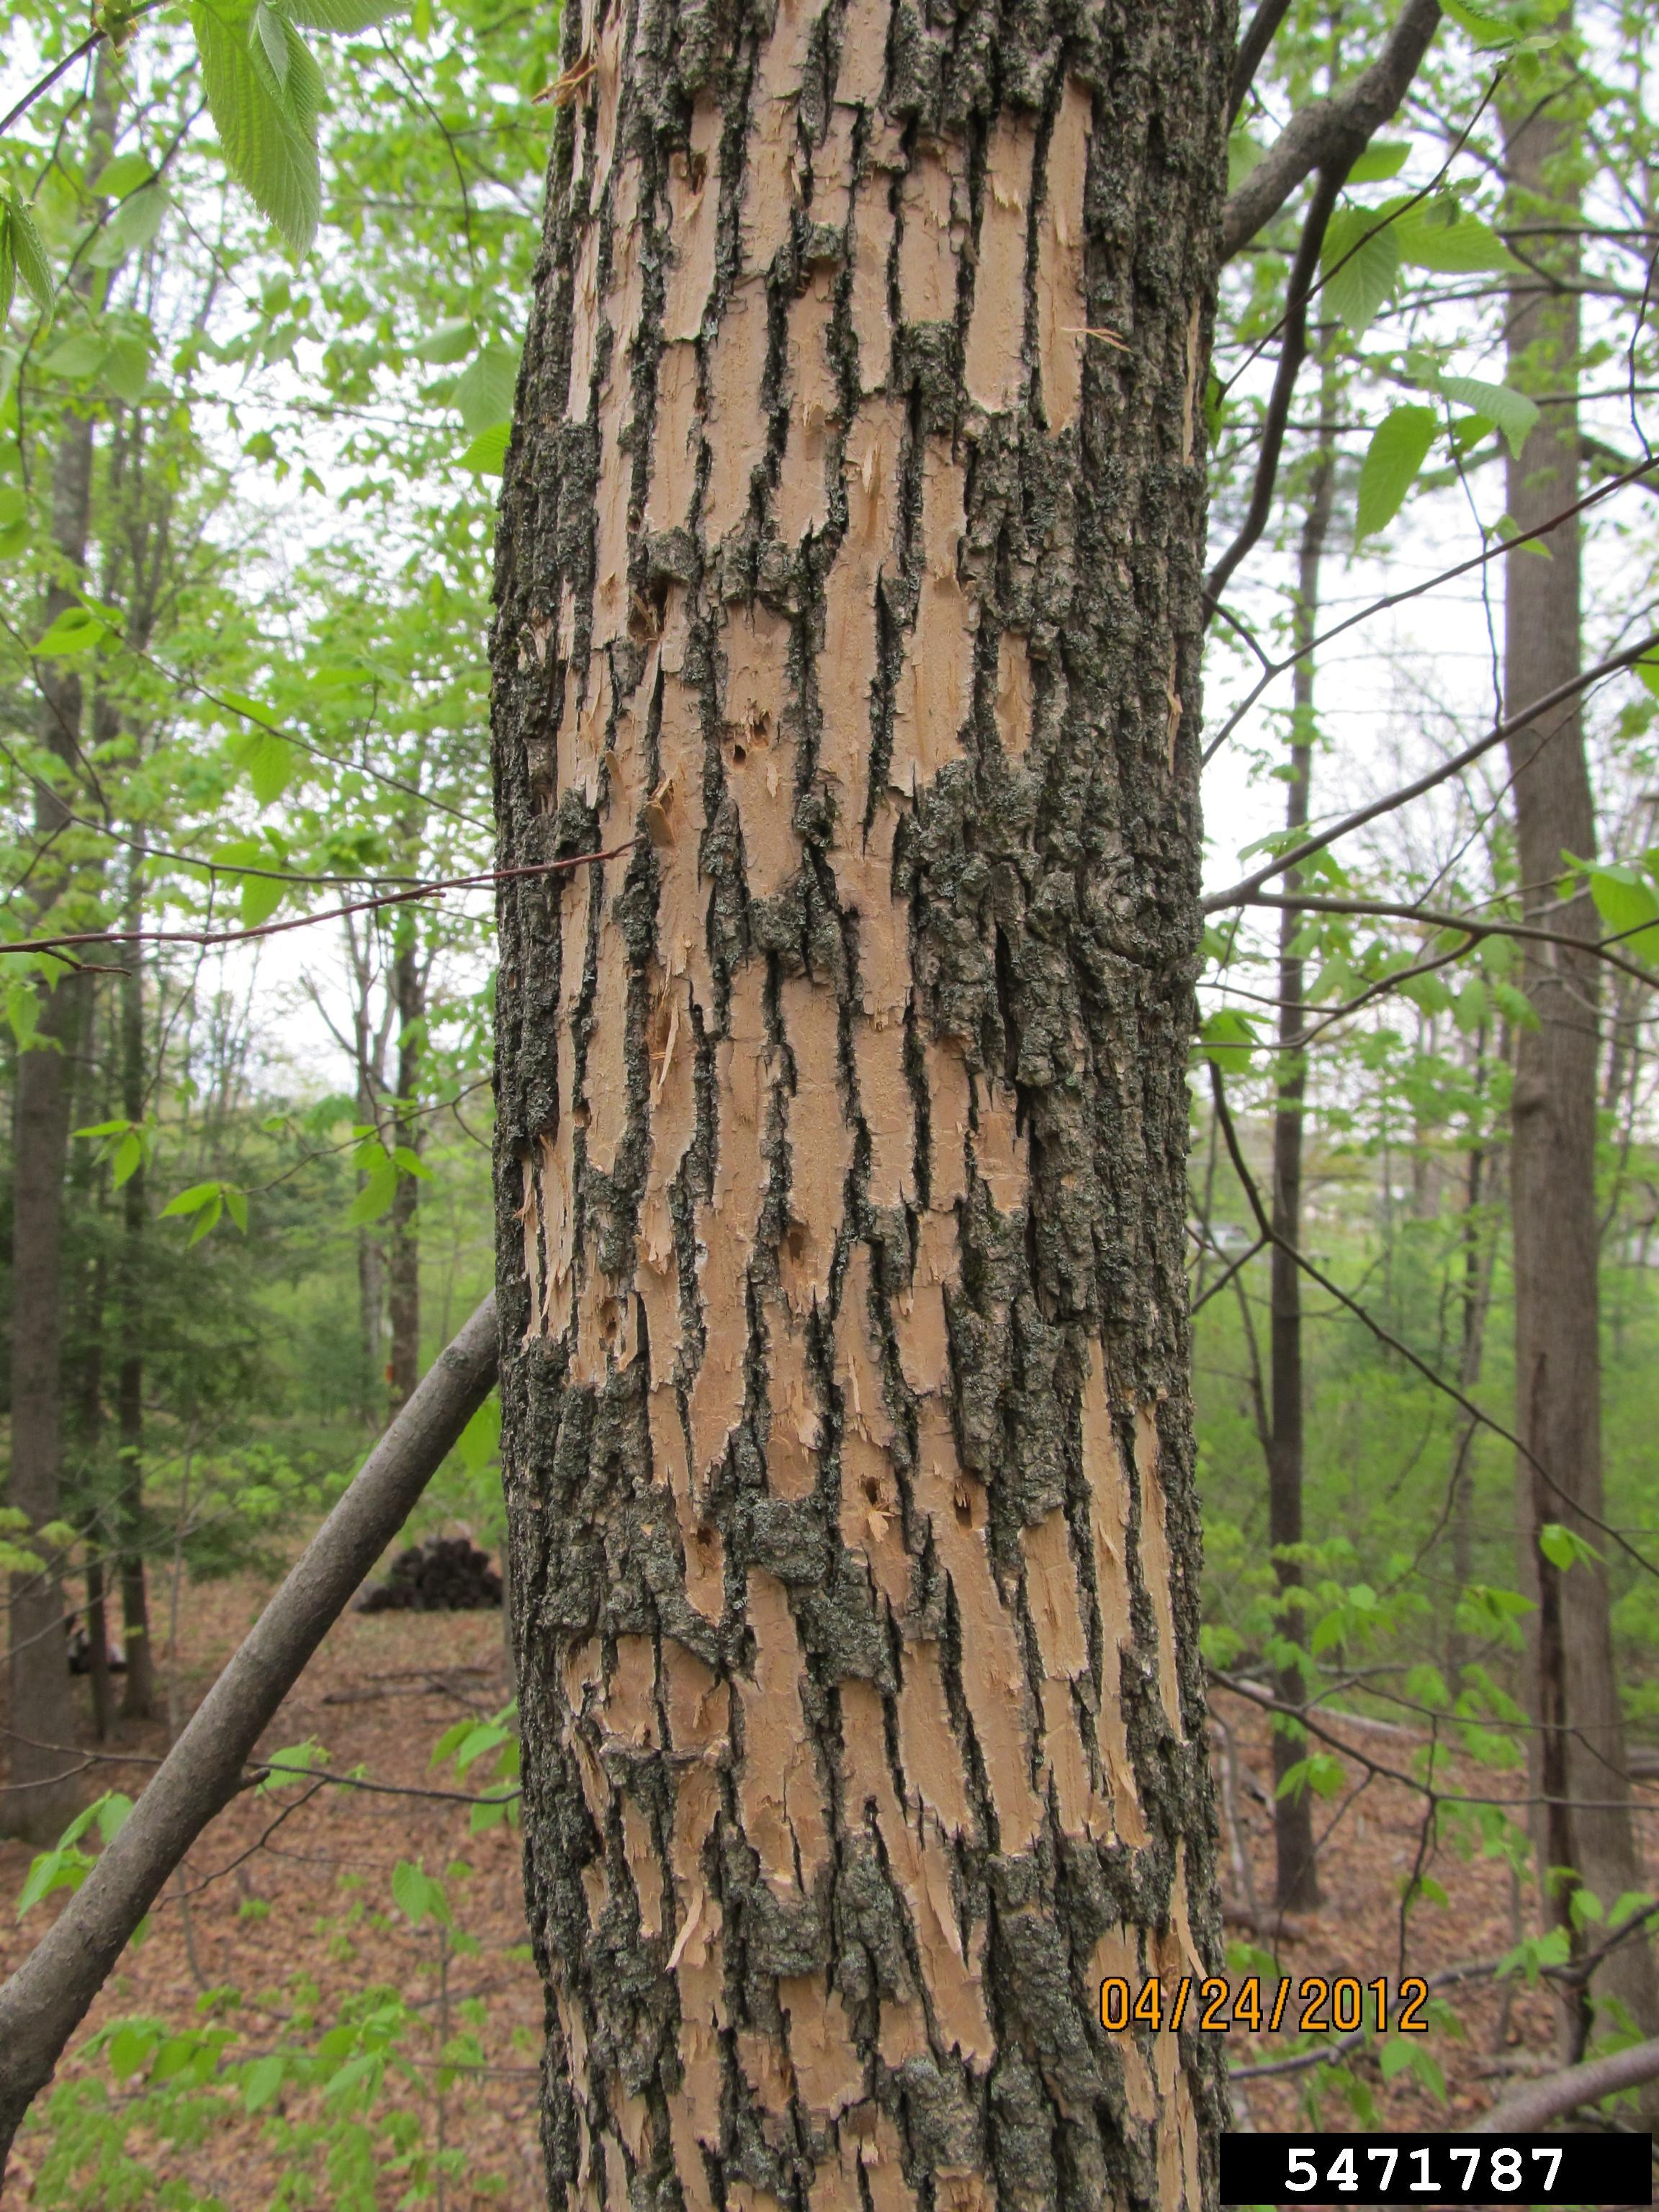 Damage From Woodpeckers Feeding on EAB Larvae